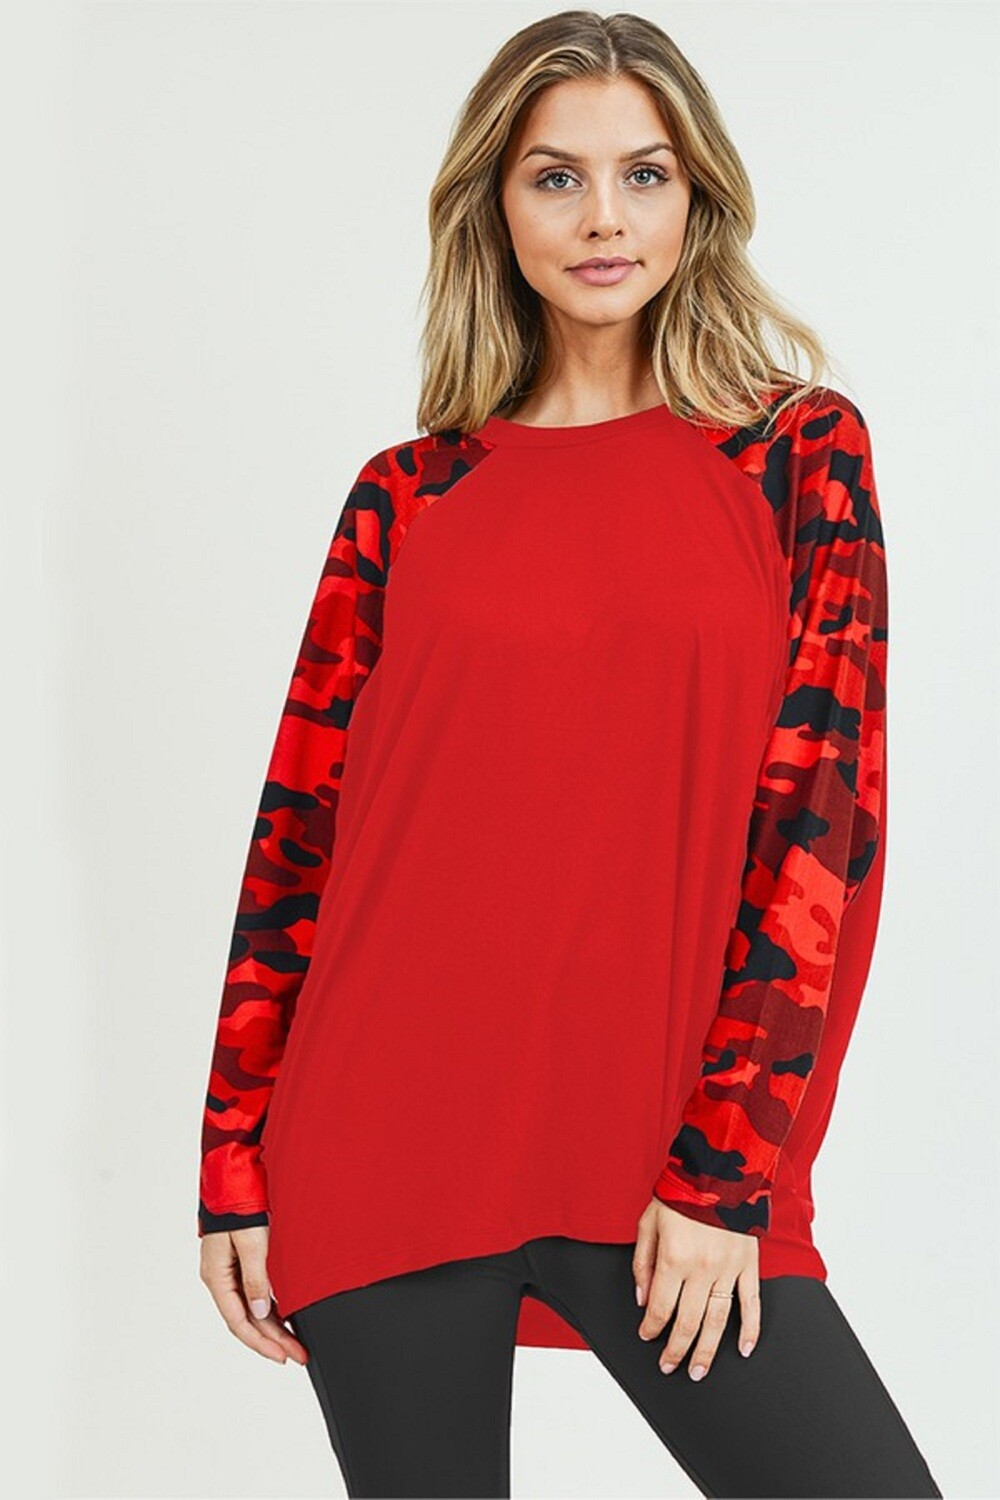 Women's Camouflage Dolman Sleeve Top- EXTRA LARGE